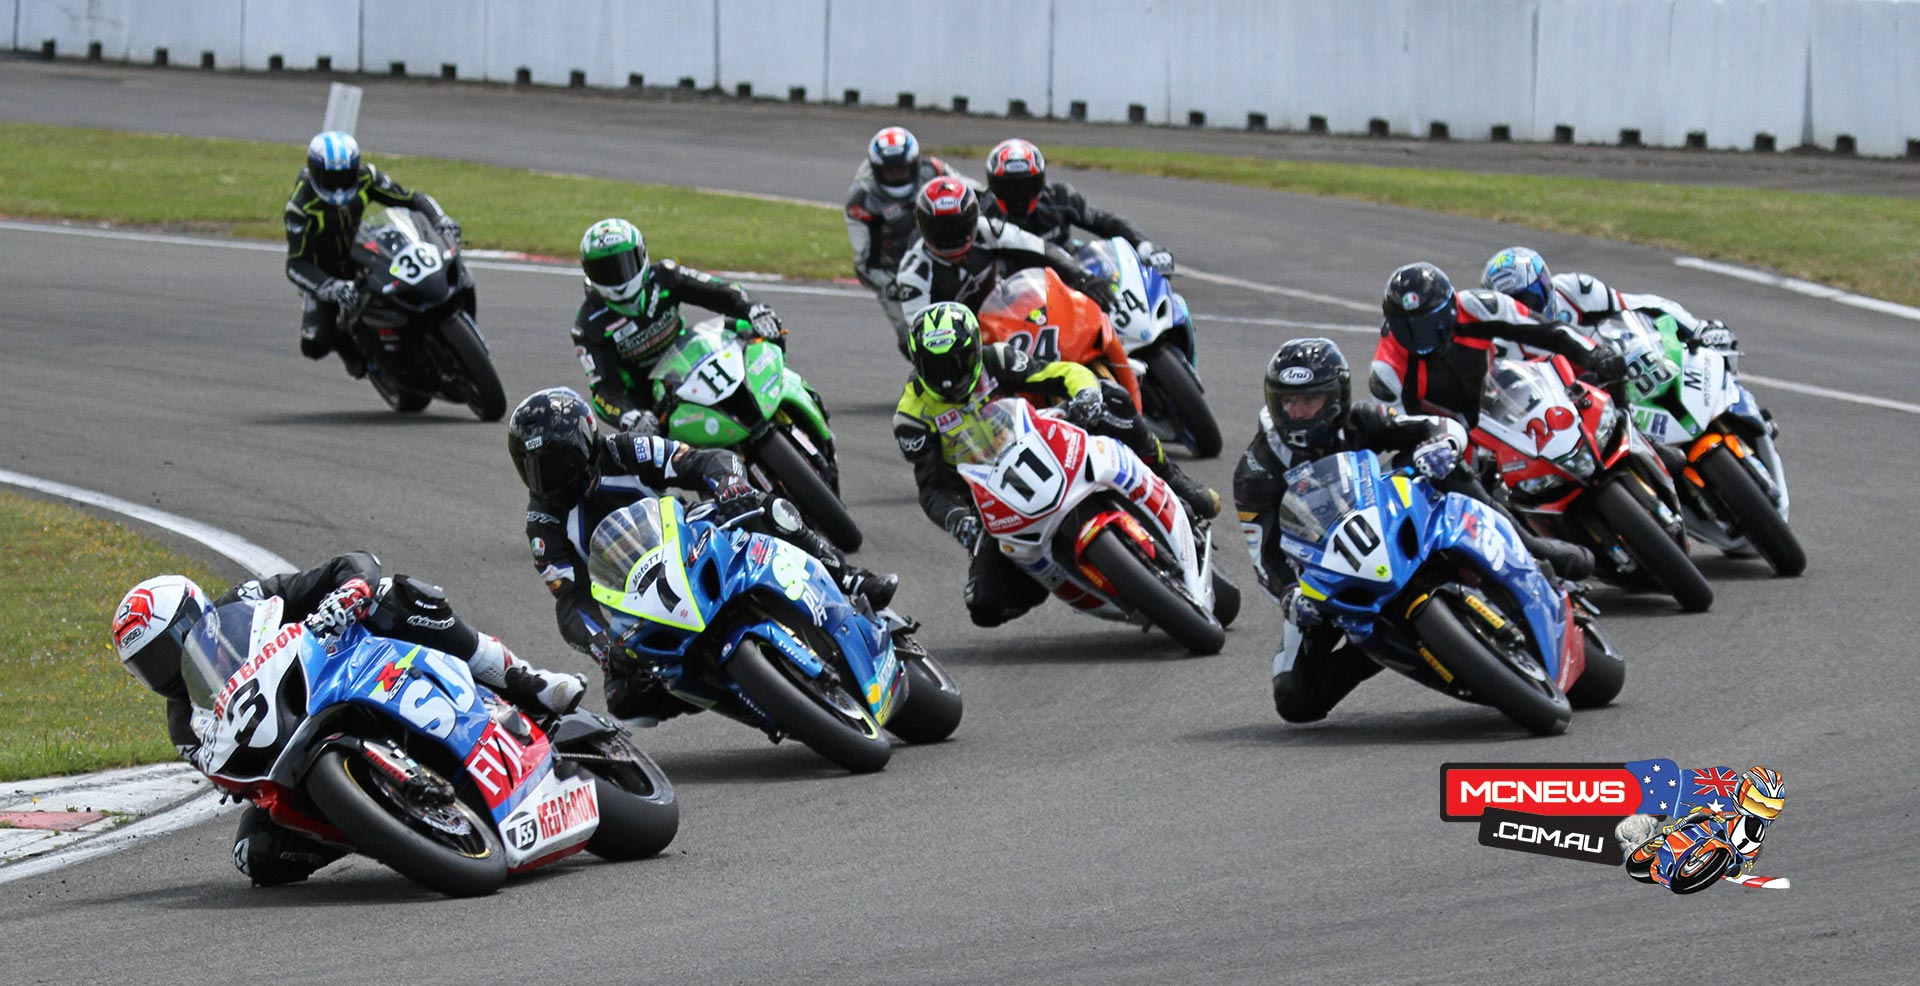 Sloan Frost leads the pack into the first corner in the opening F1 Superbike race